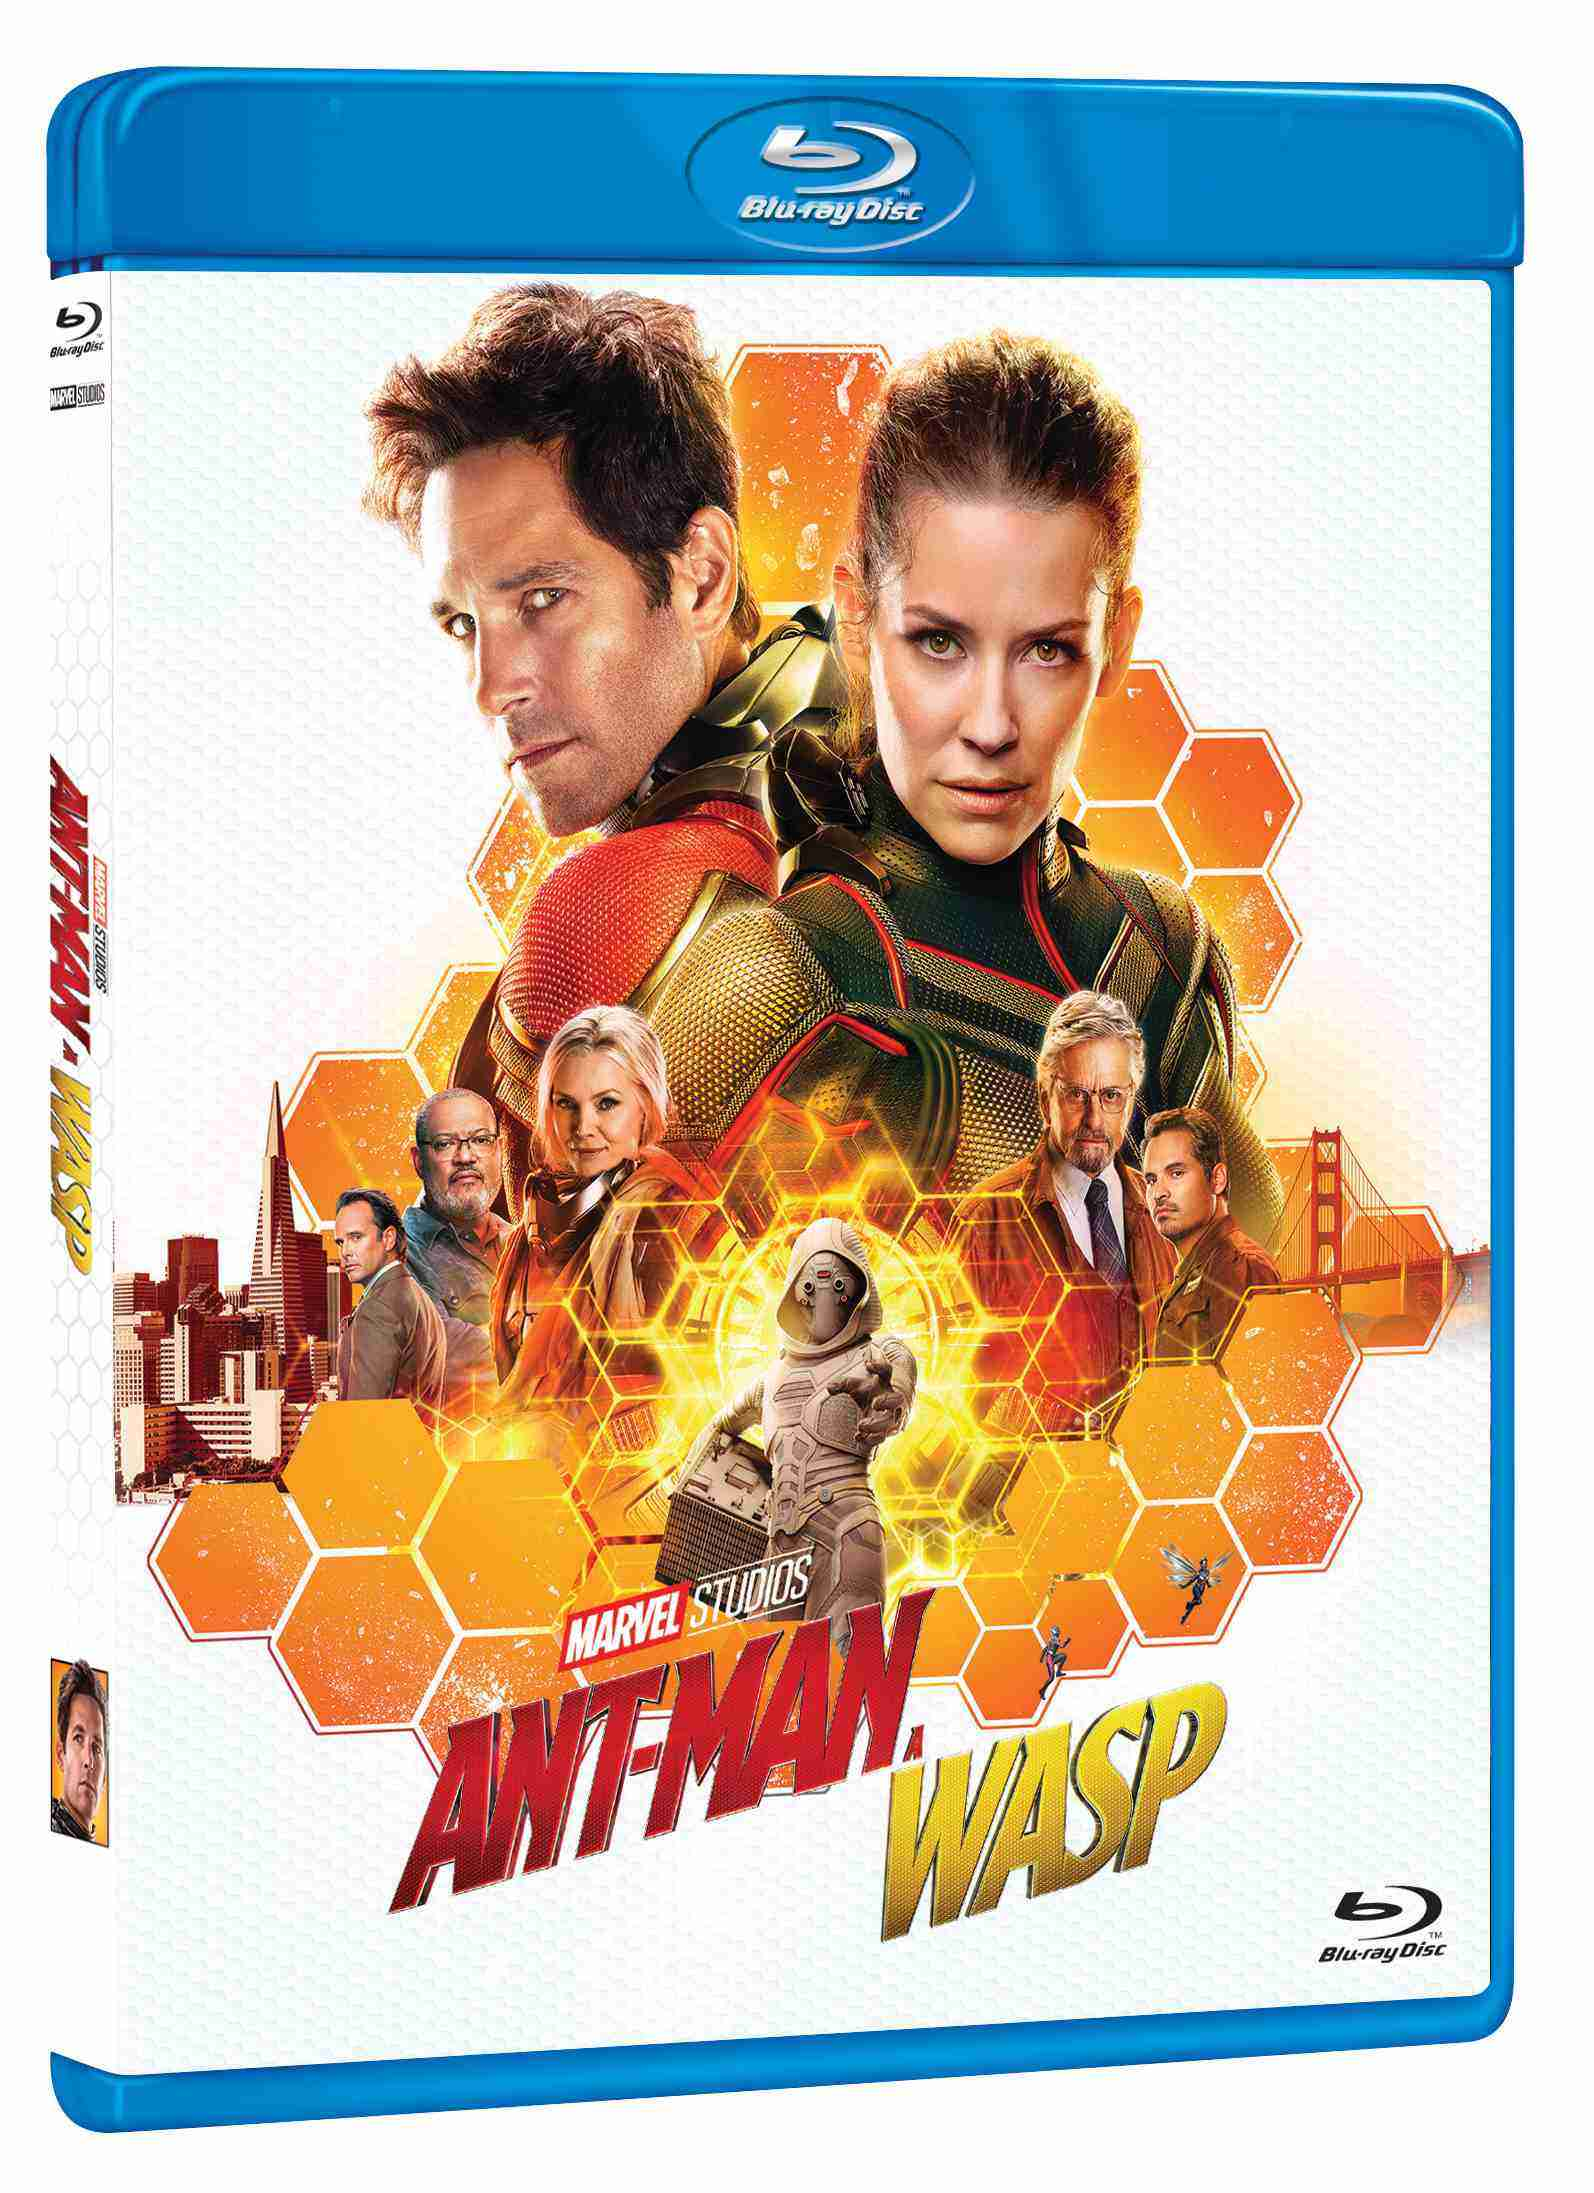 Ant-Man a Wasp - Blu-ray